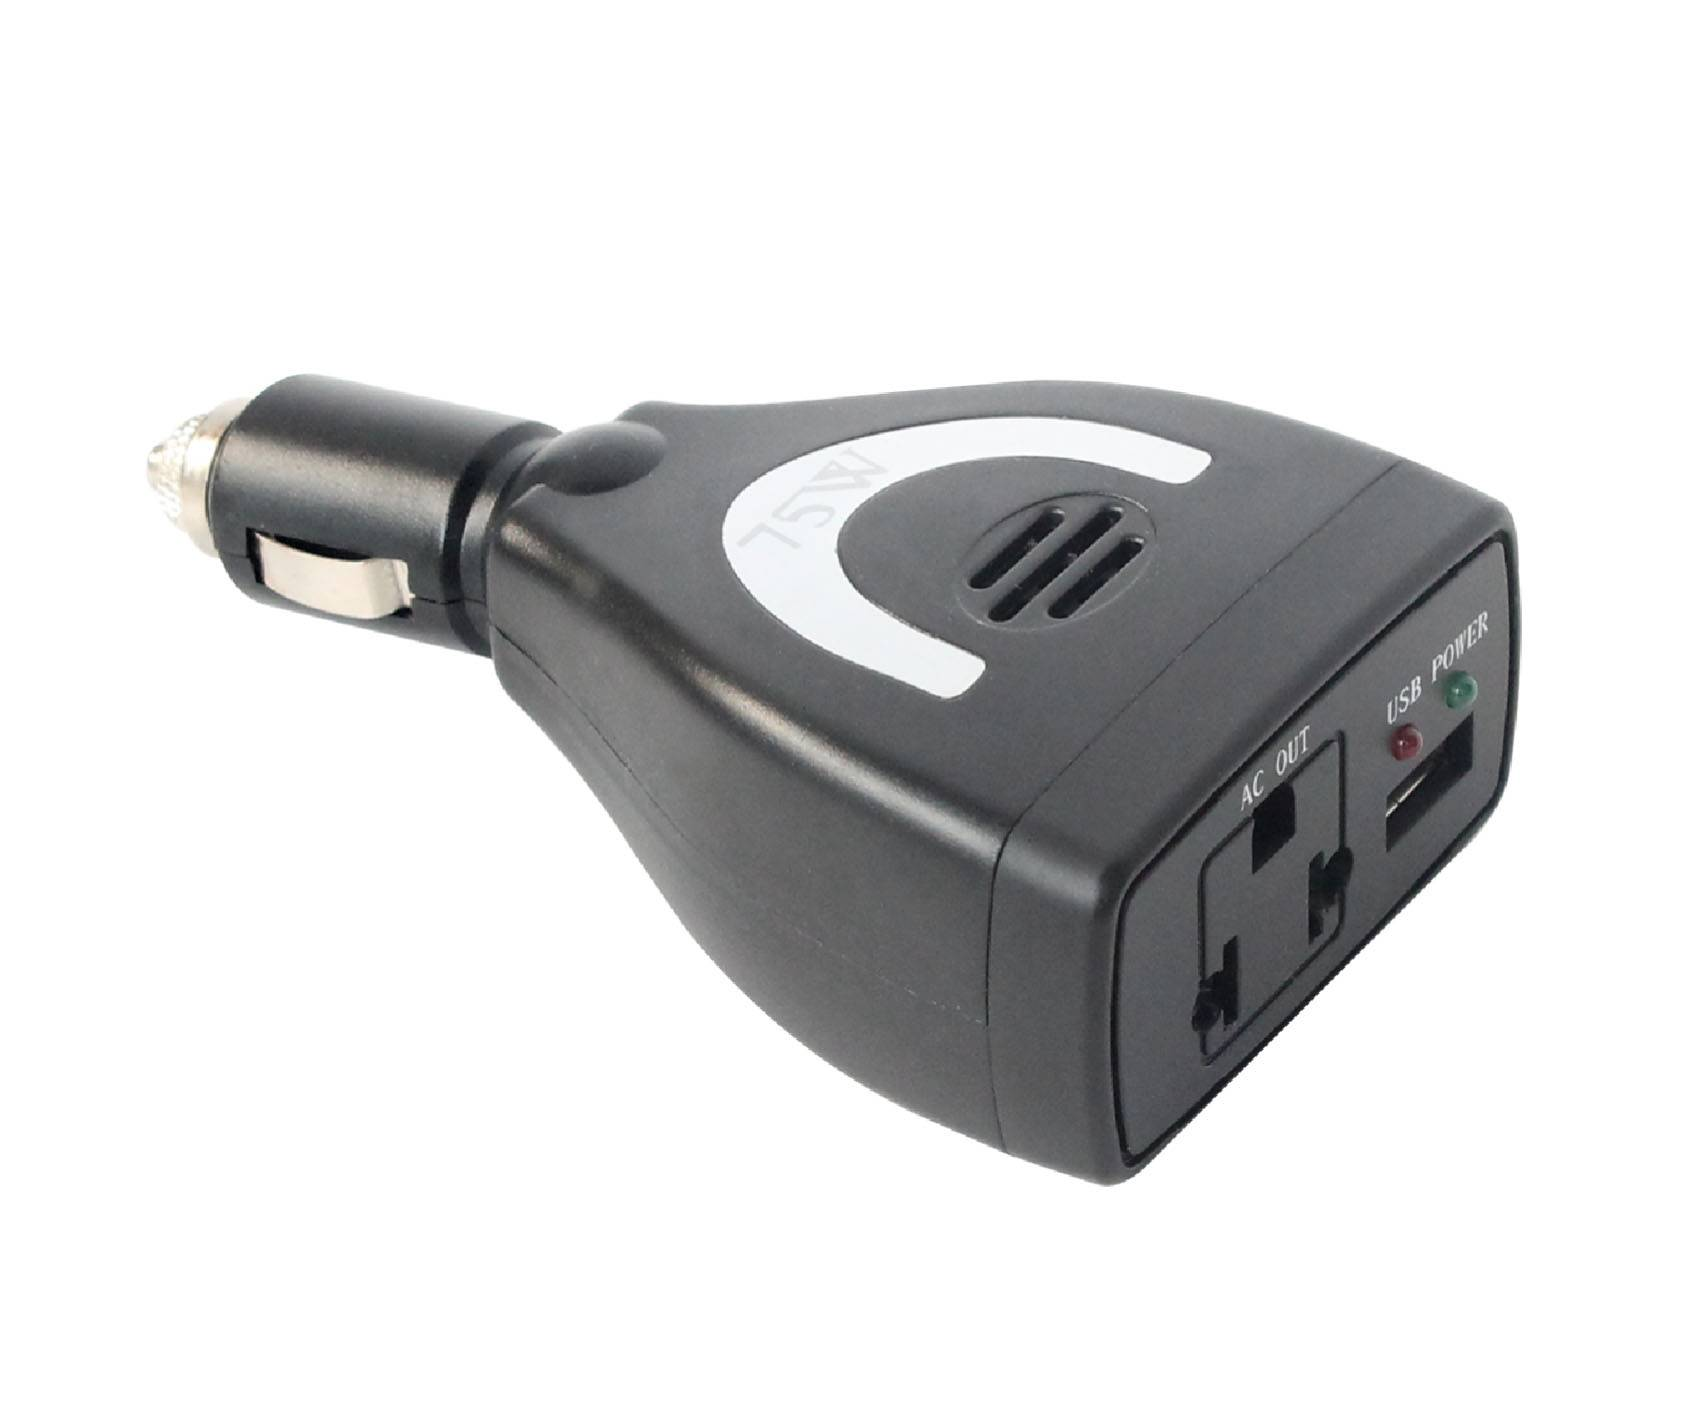 Meind 75W car inverter with USB for laptop computer,Iphone,DVD, camera etc.